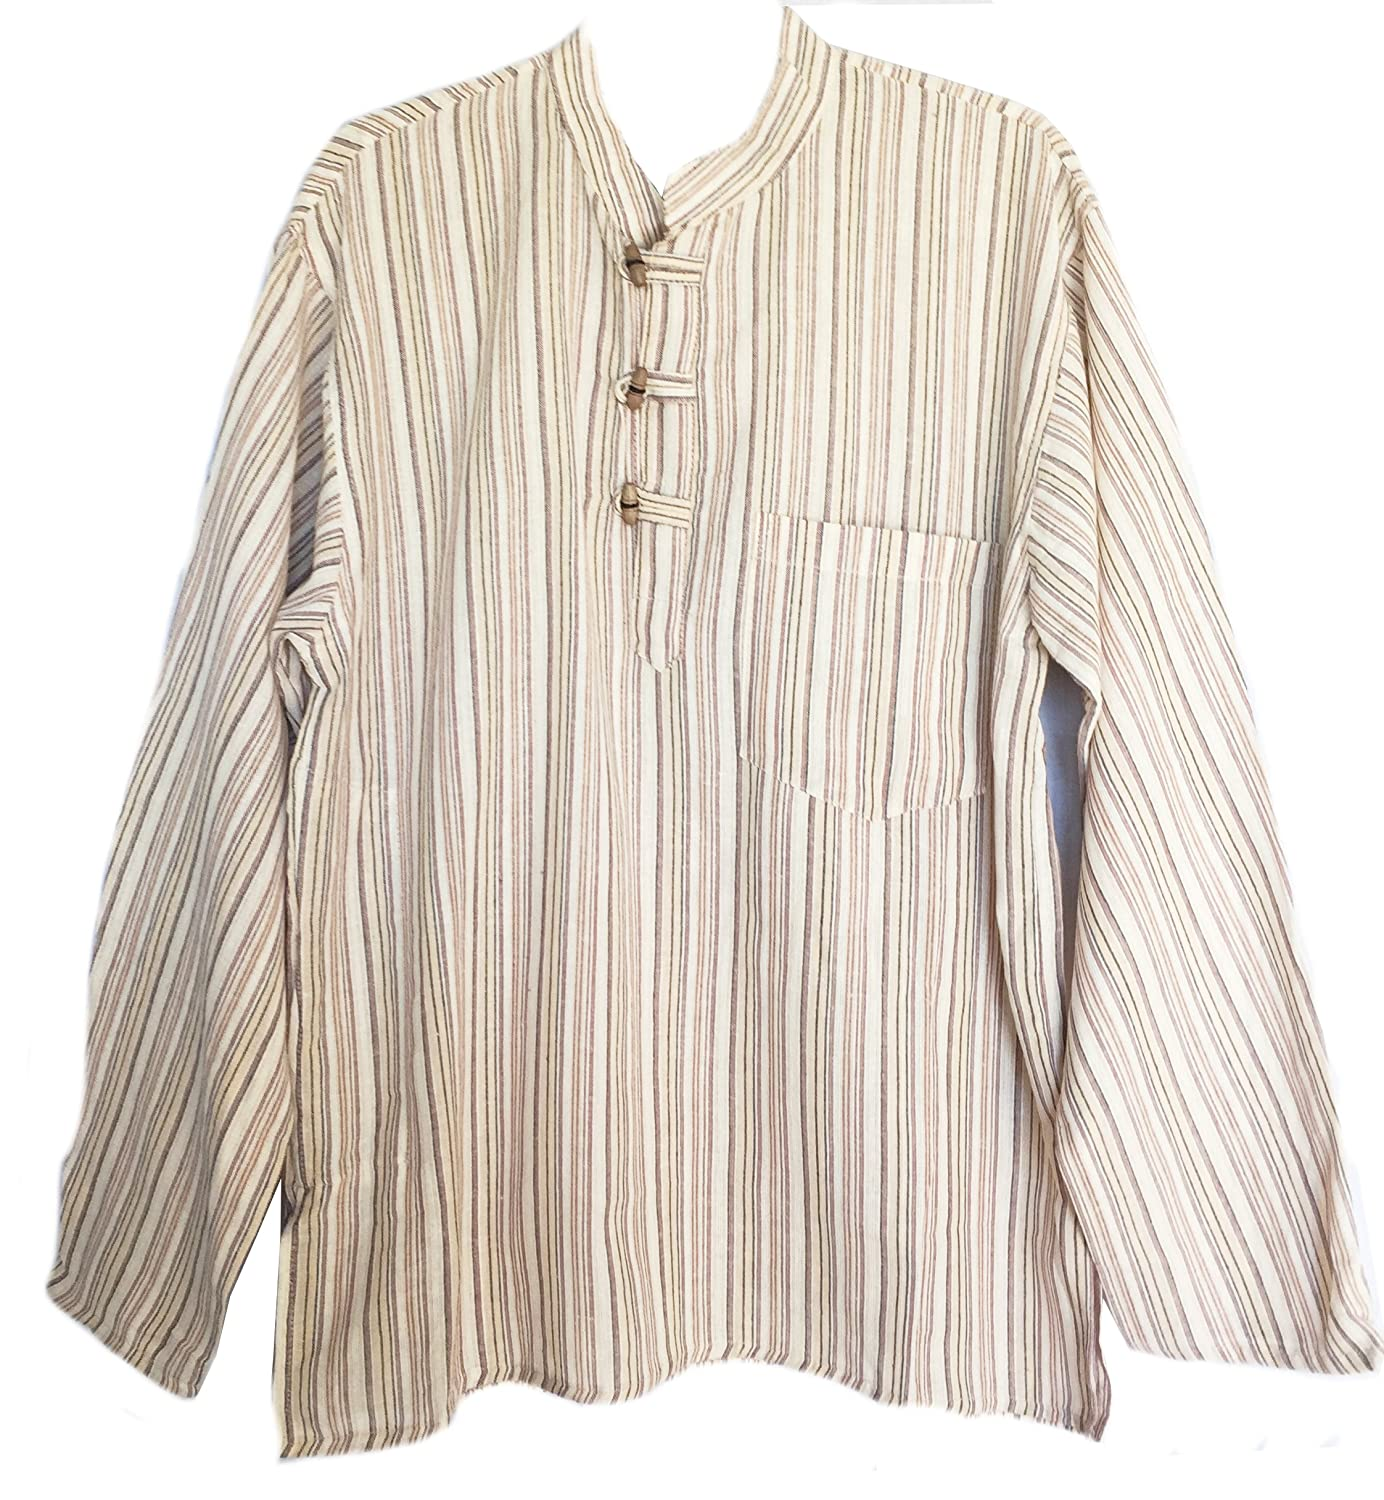 Men's Hand Loomed Striped Cotton Banded Collar Tunic